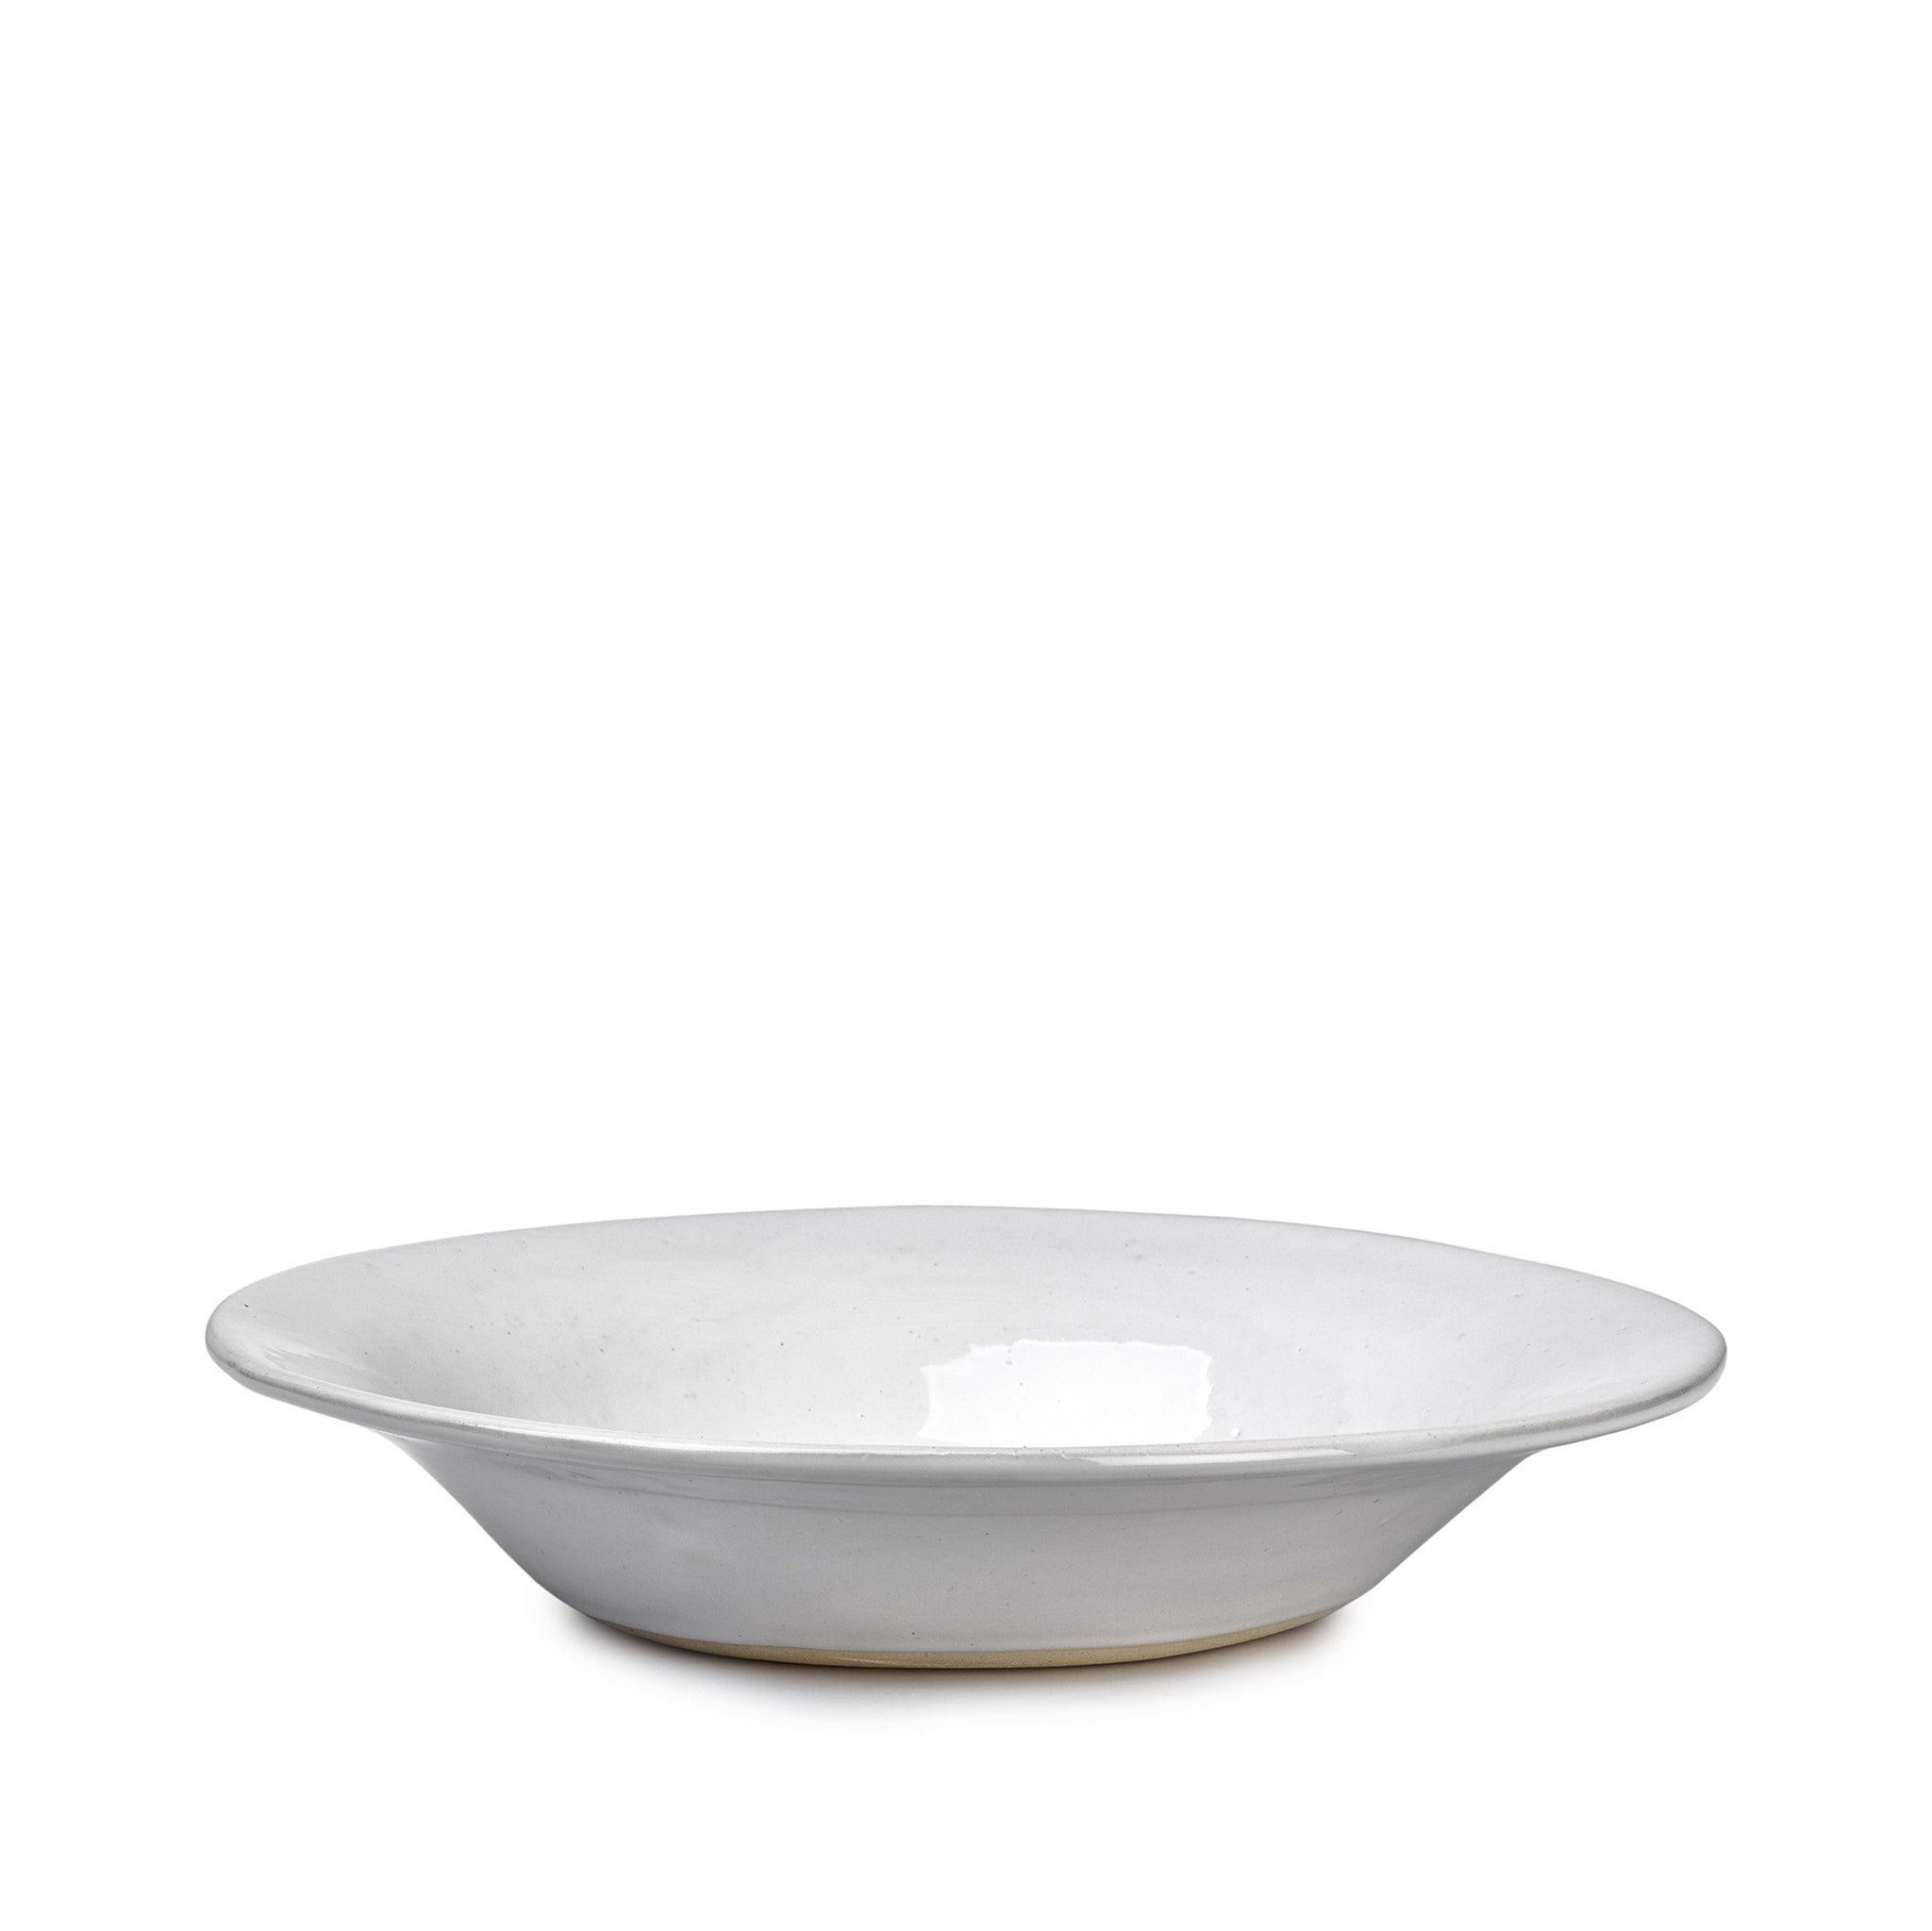 Wonki Ware Pasta and Soup Plate in White, 26cm